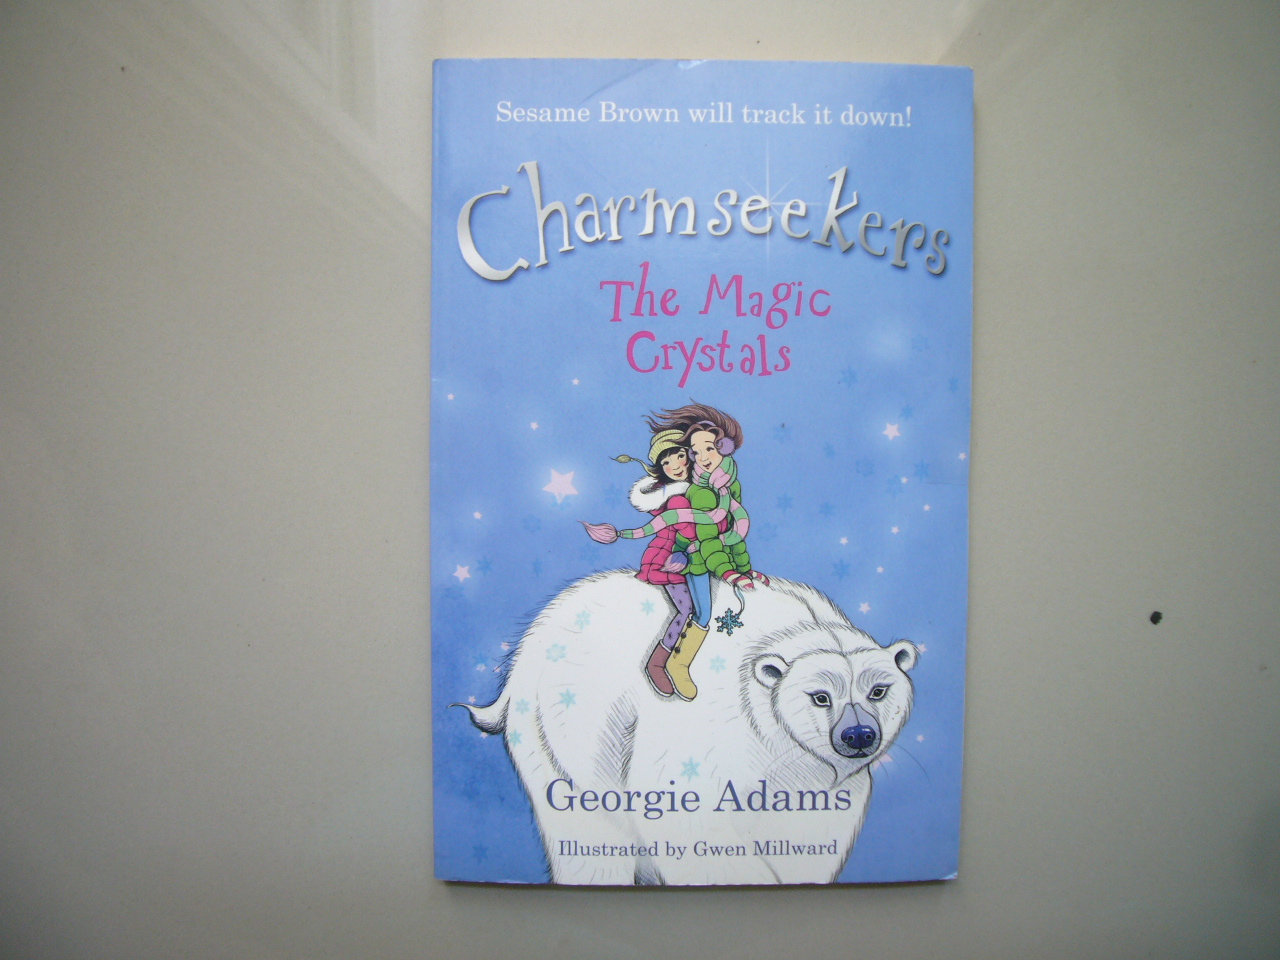 Charm Seekers 7: The Magic Crystals